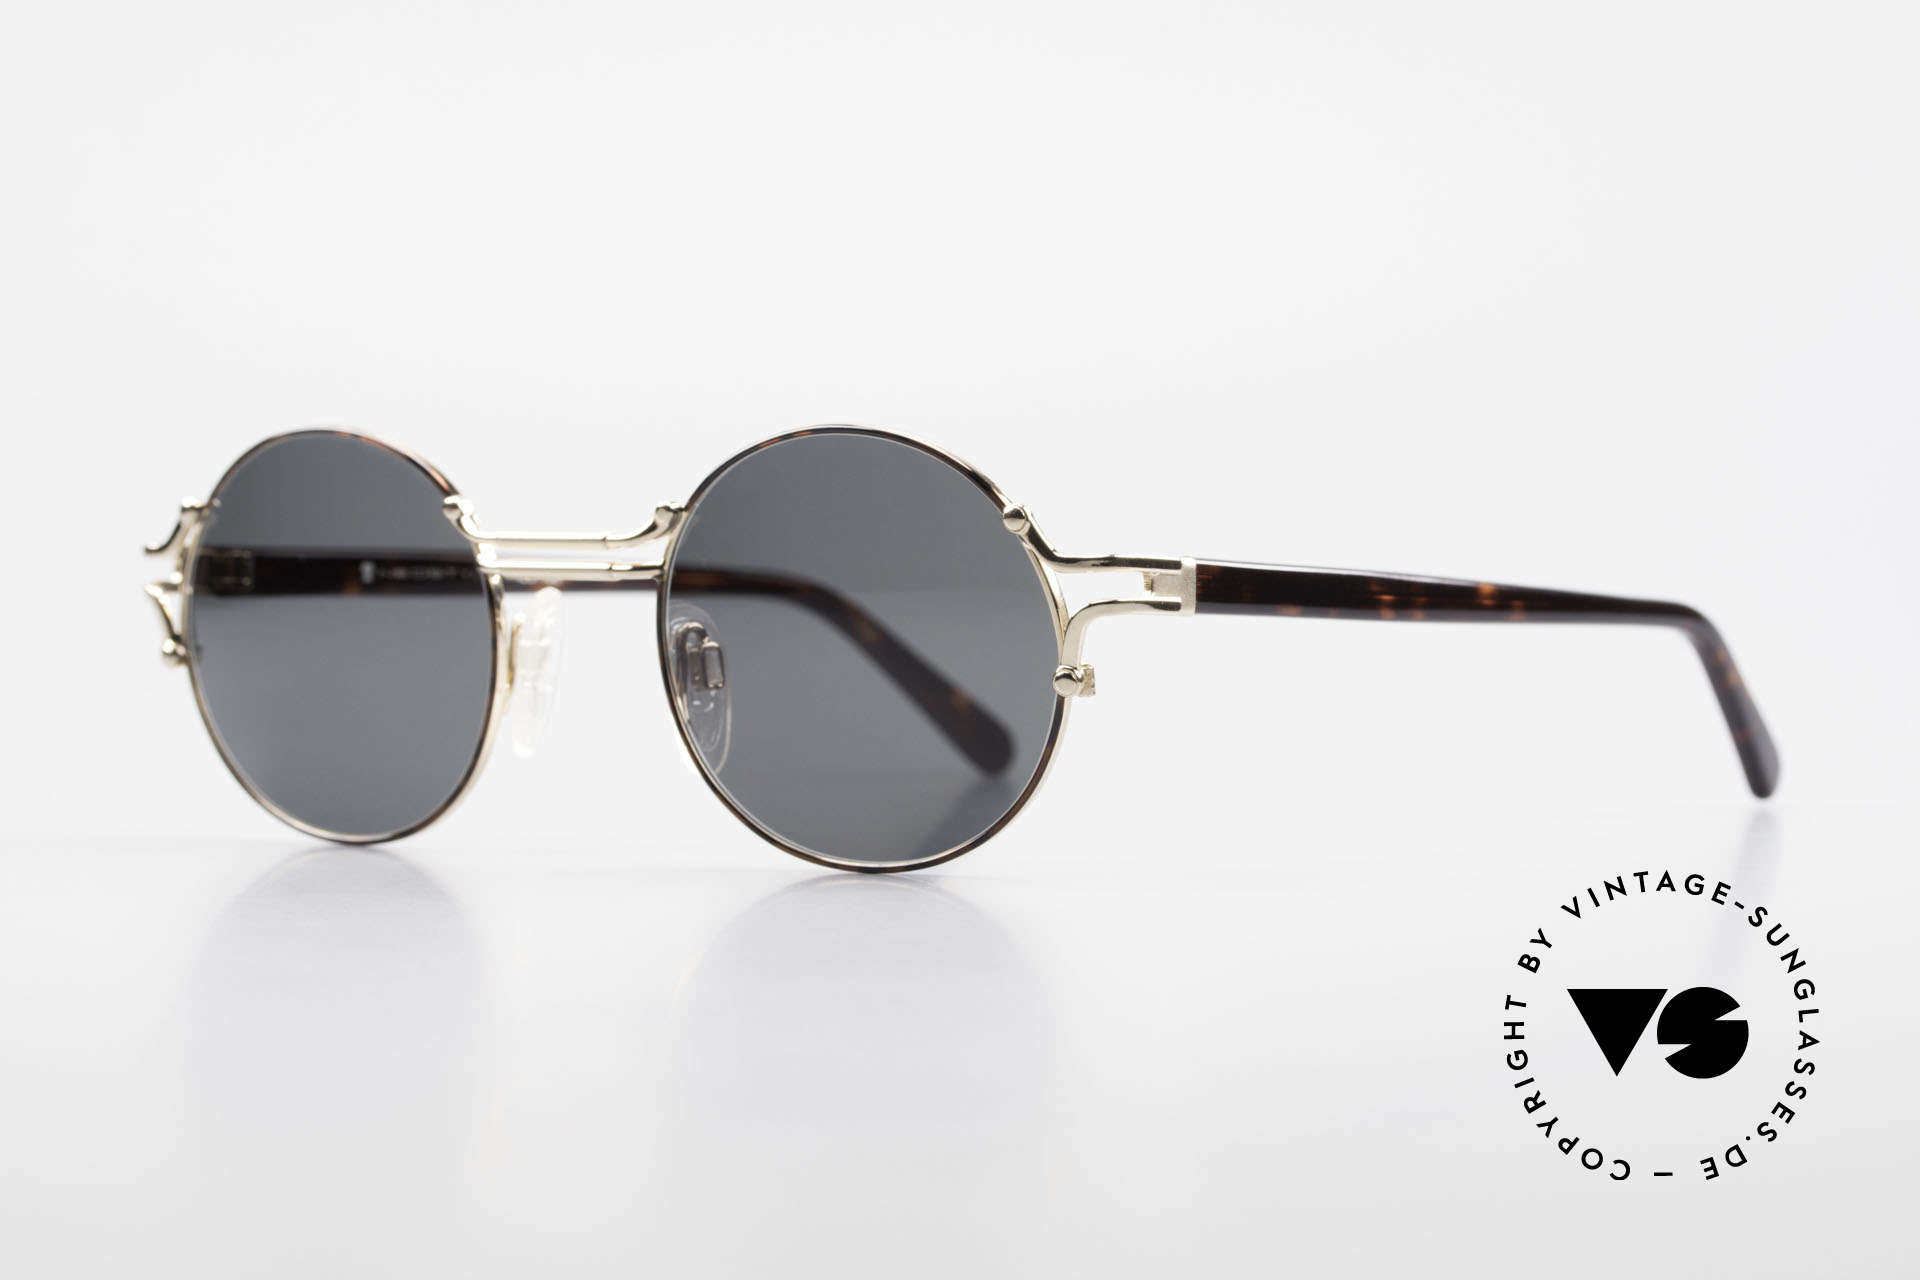 Neostyle Academic 8 Round Vintage Sunglasses 80's, truly high-end craftsmanship, made in Germany, Made for Men and Women